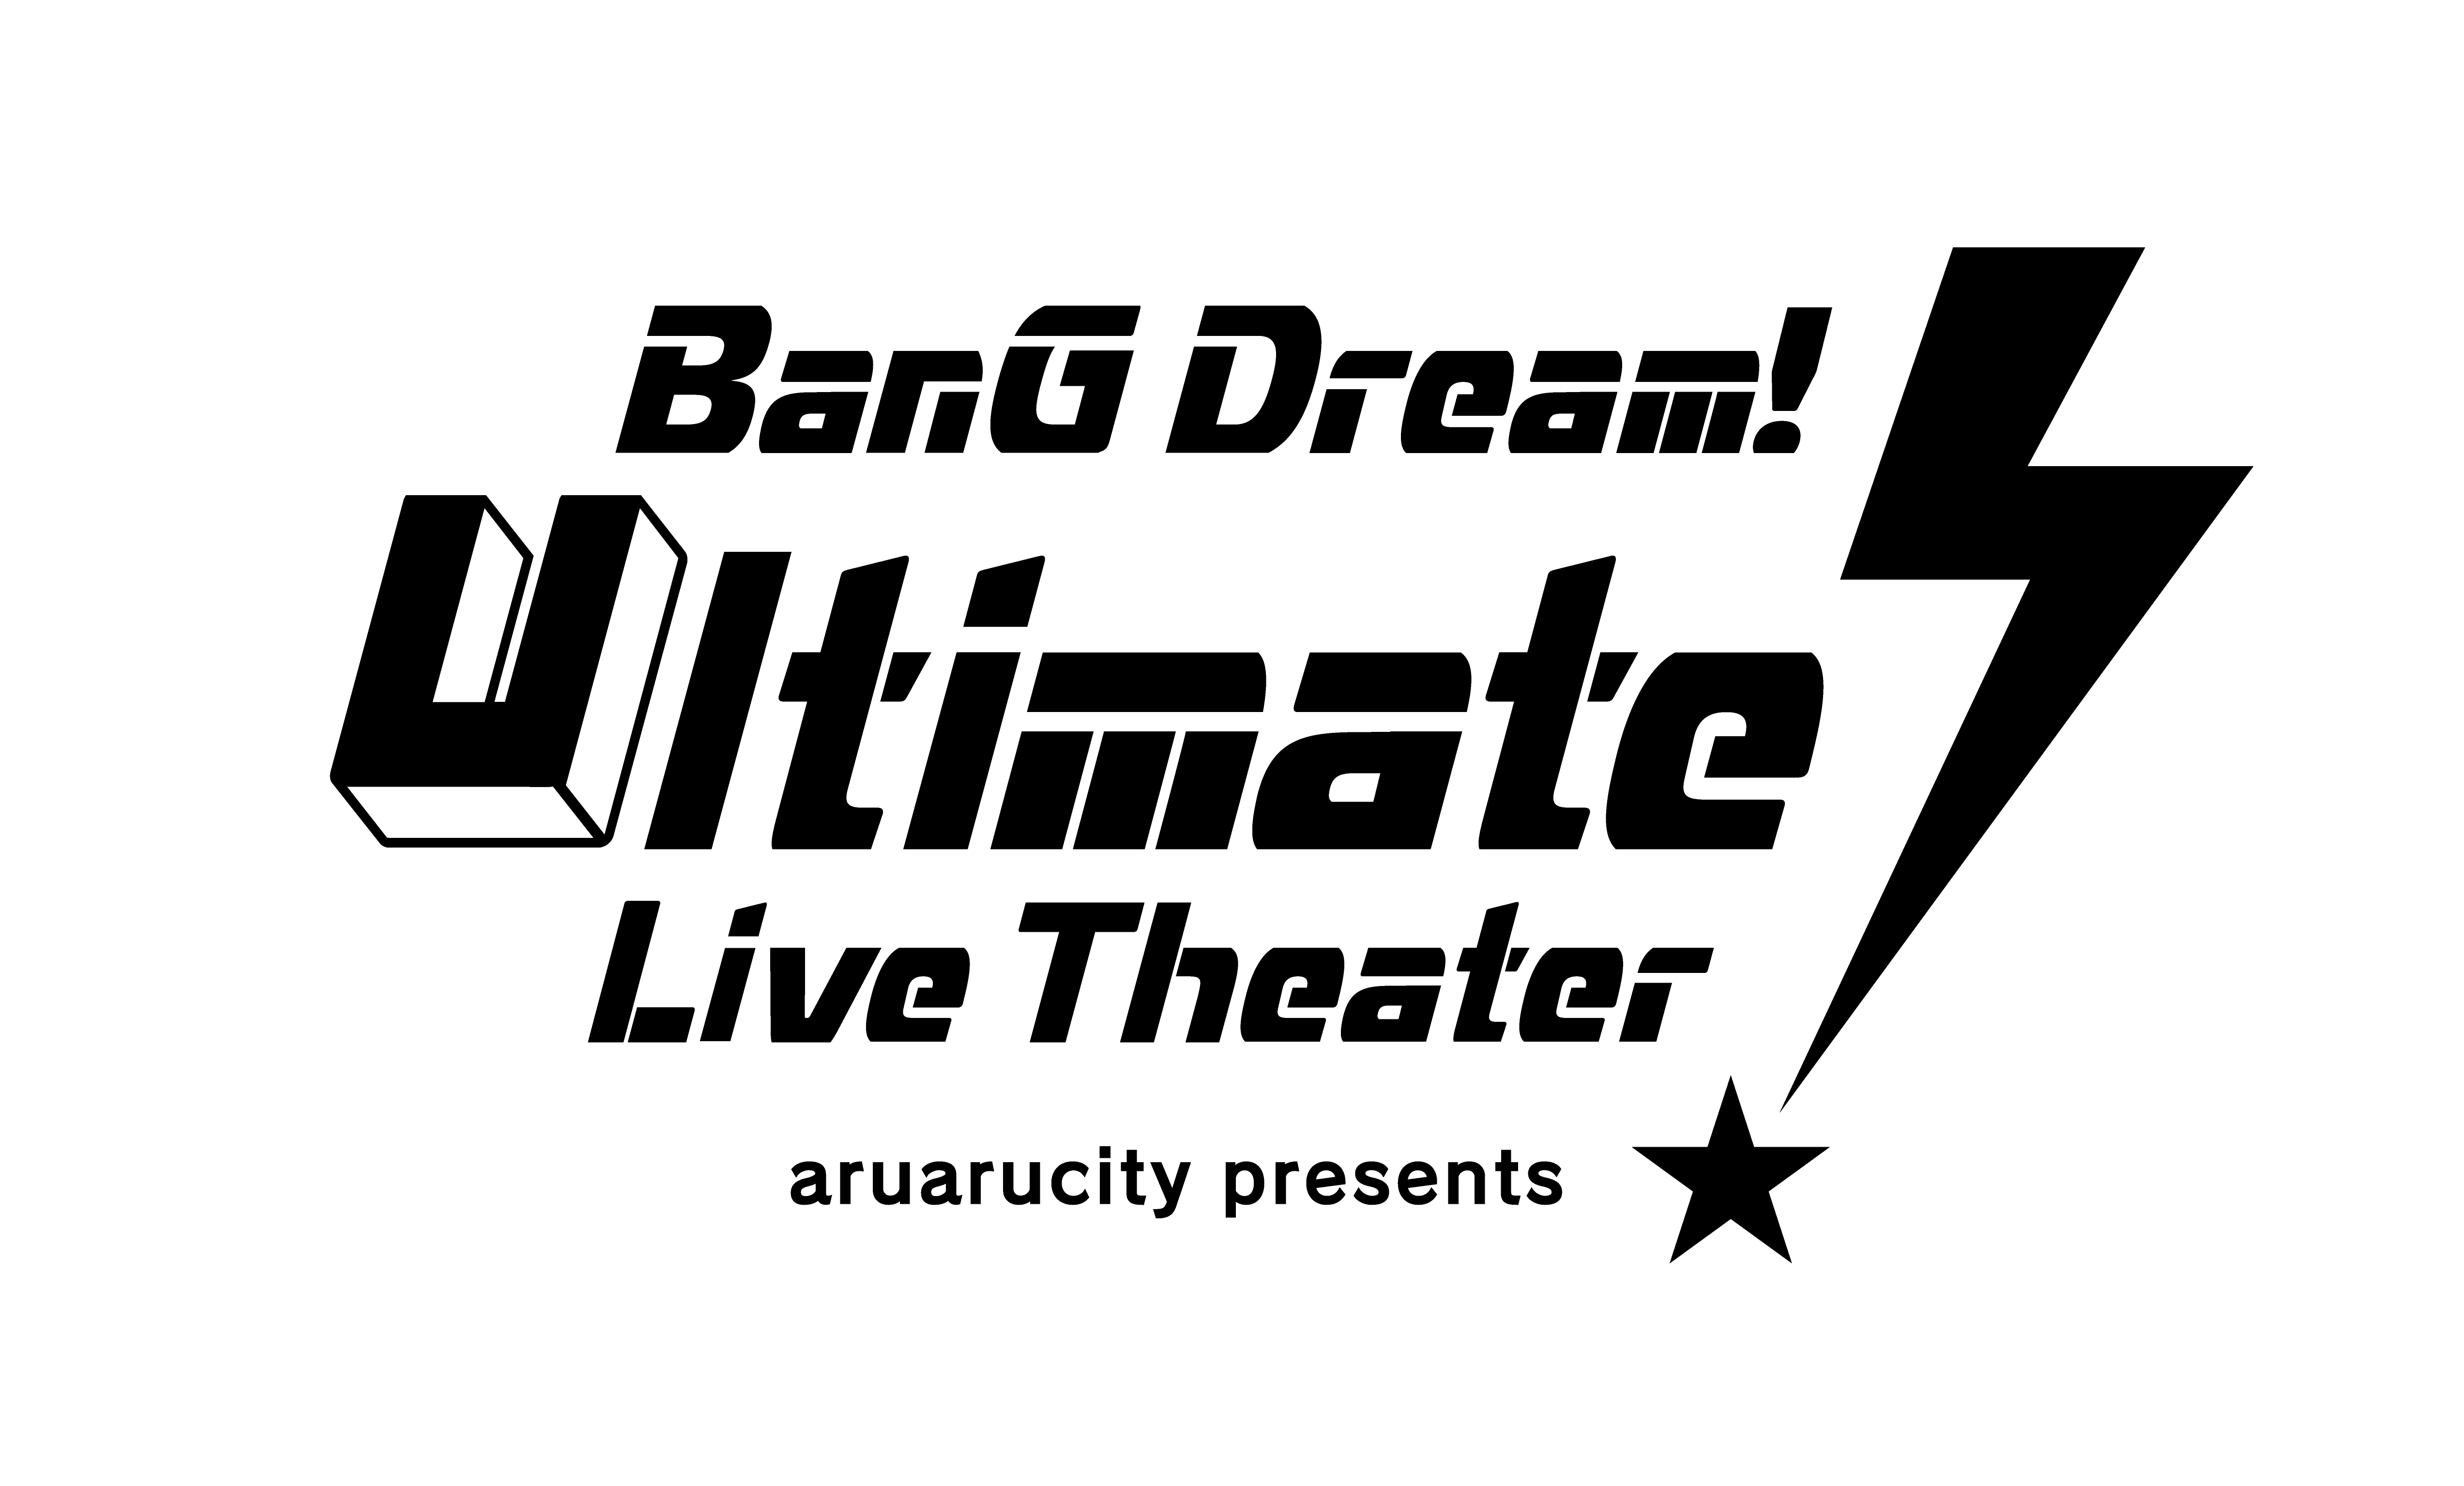 『BanG Dream! Ultimate Live Theater』ロゴ